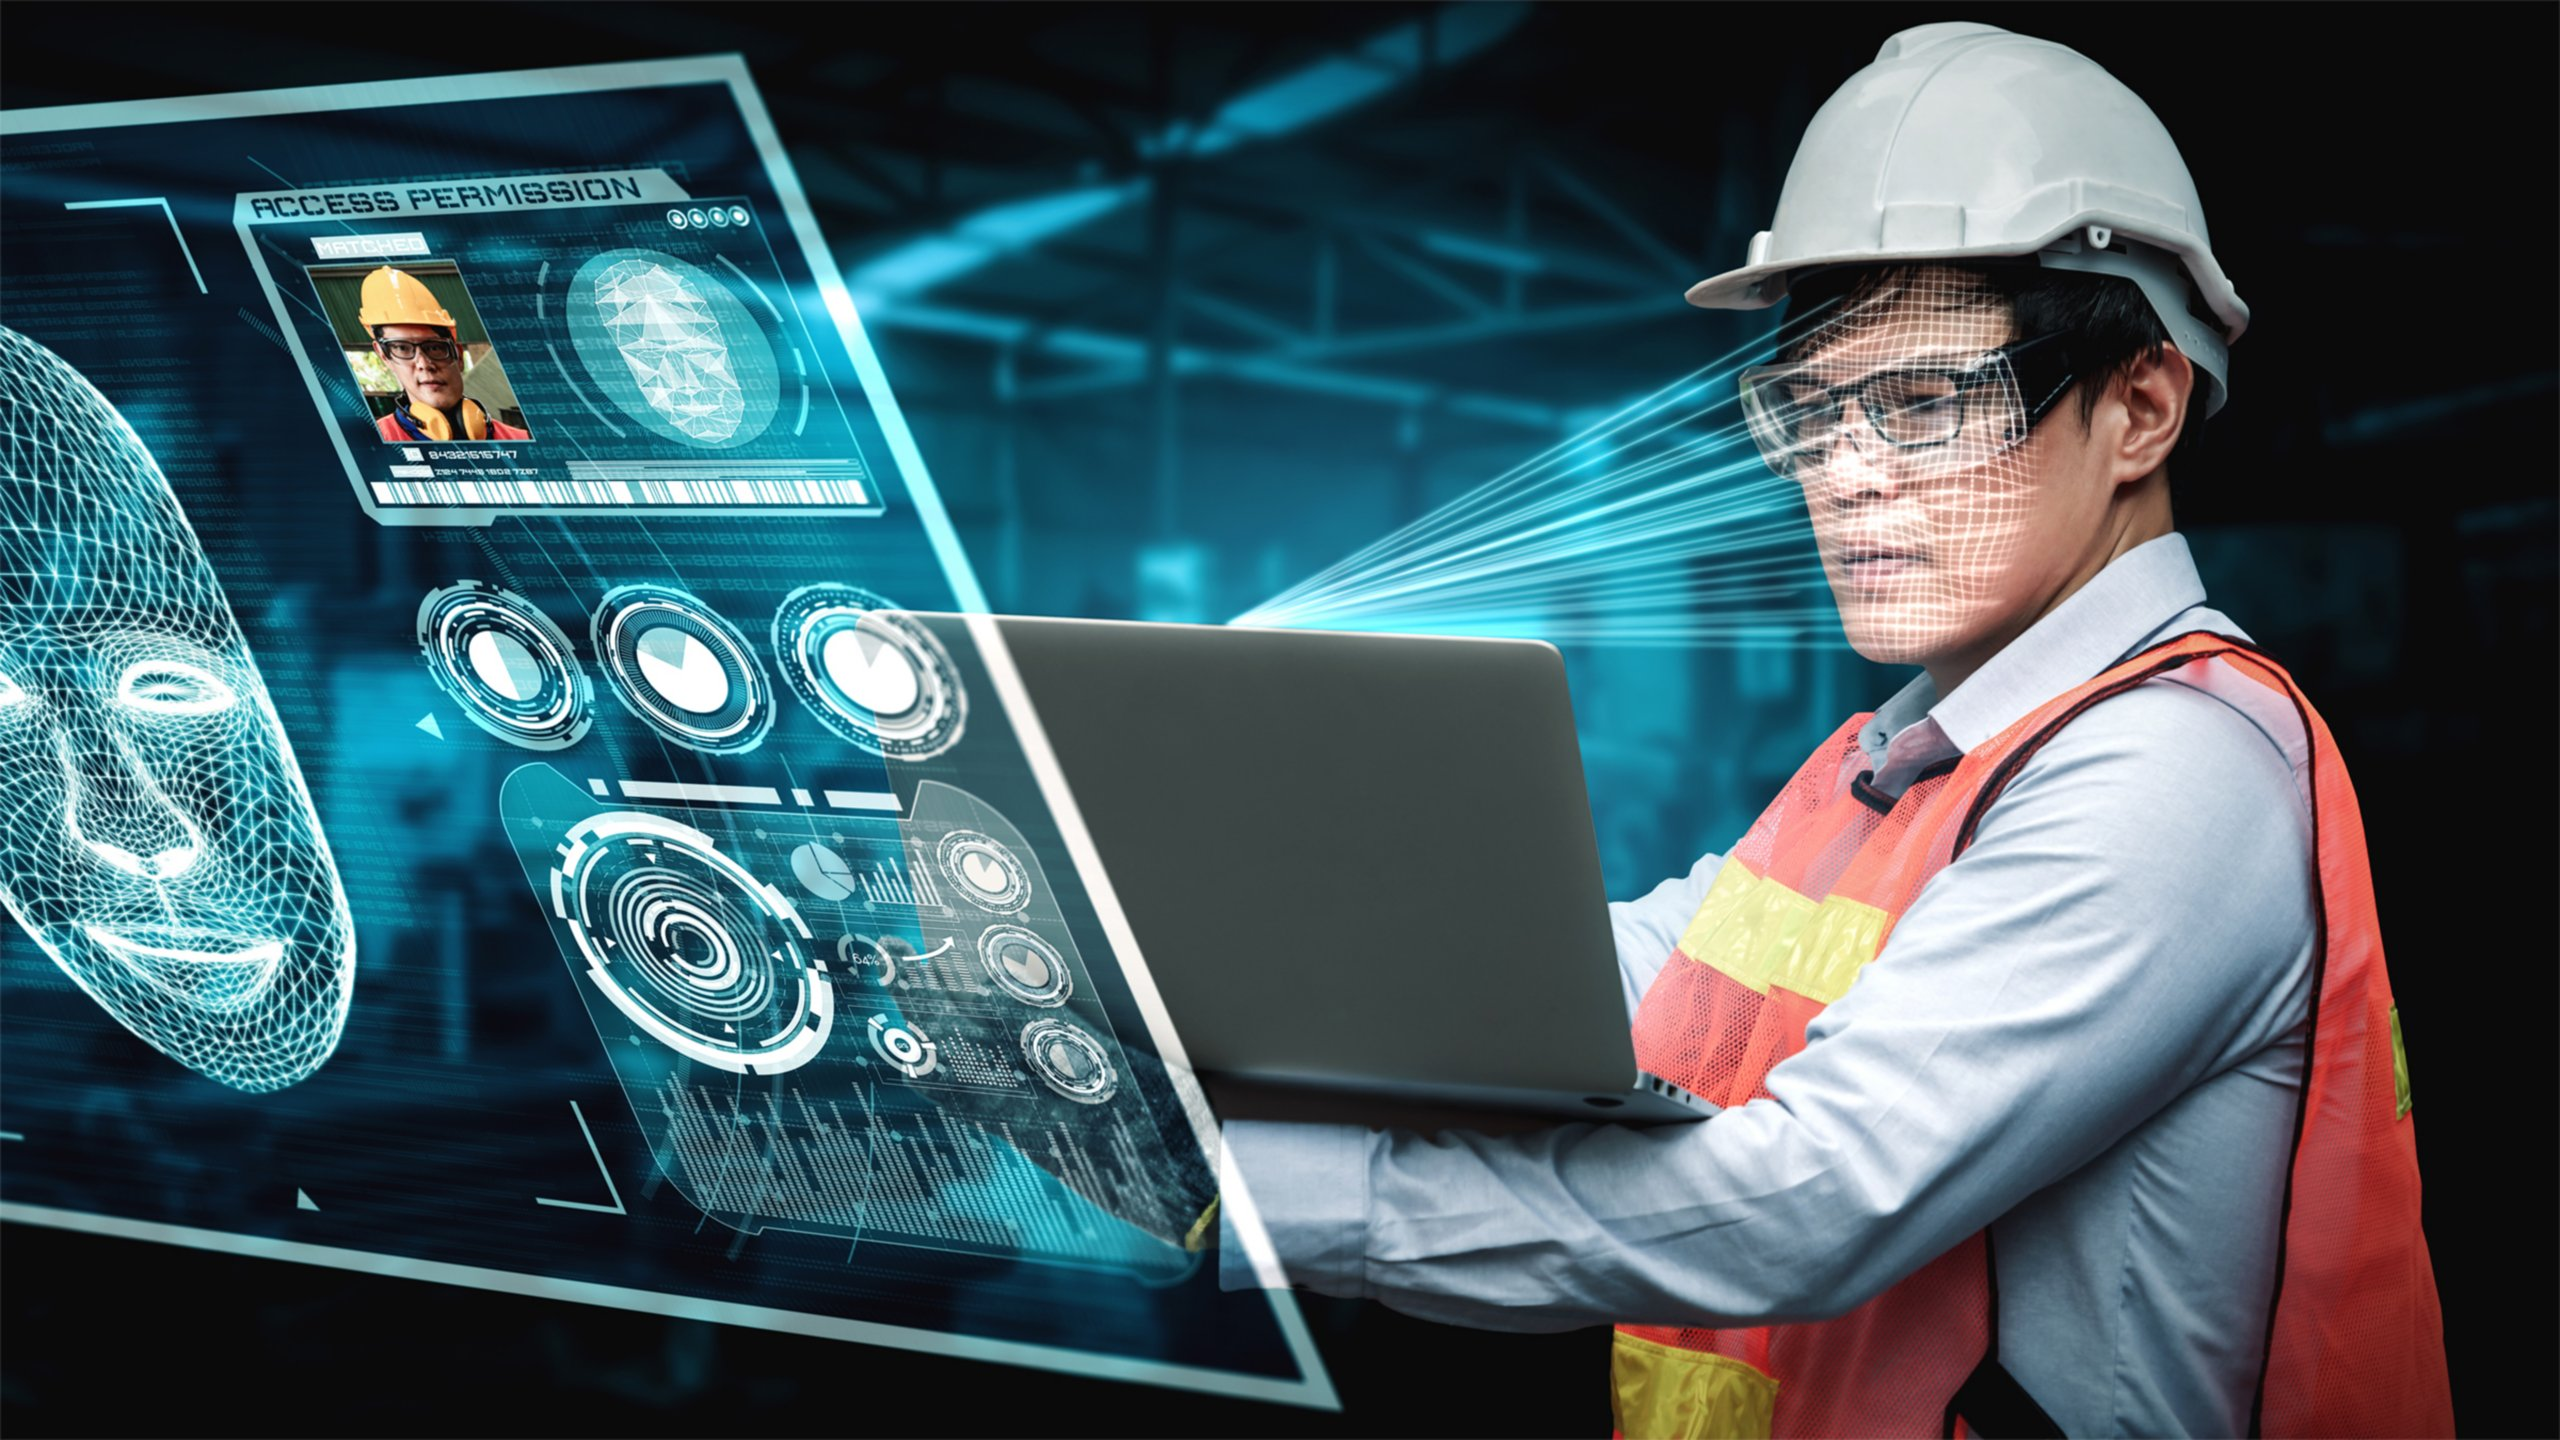 Man in a manufacturing setting, wearing a hard hat and orange safety vest while looking at a laptop. The information he is seeing is being shown in front of him.